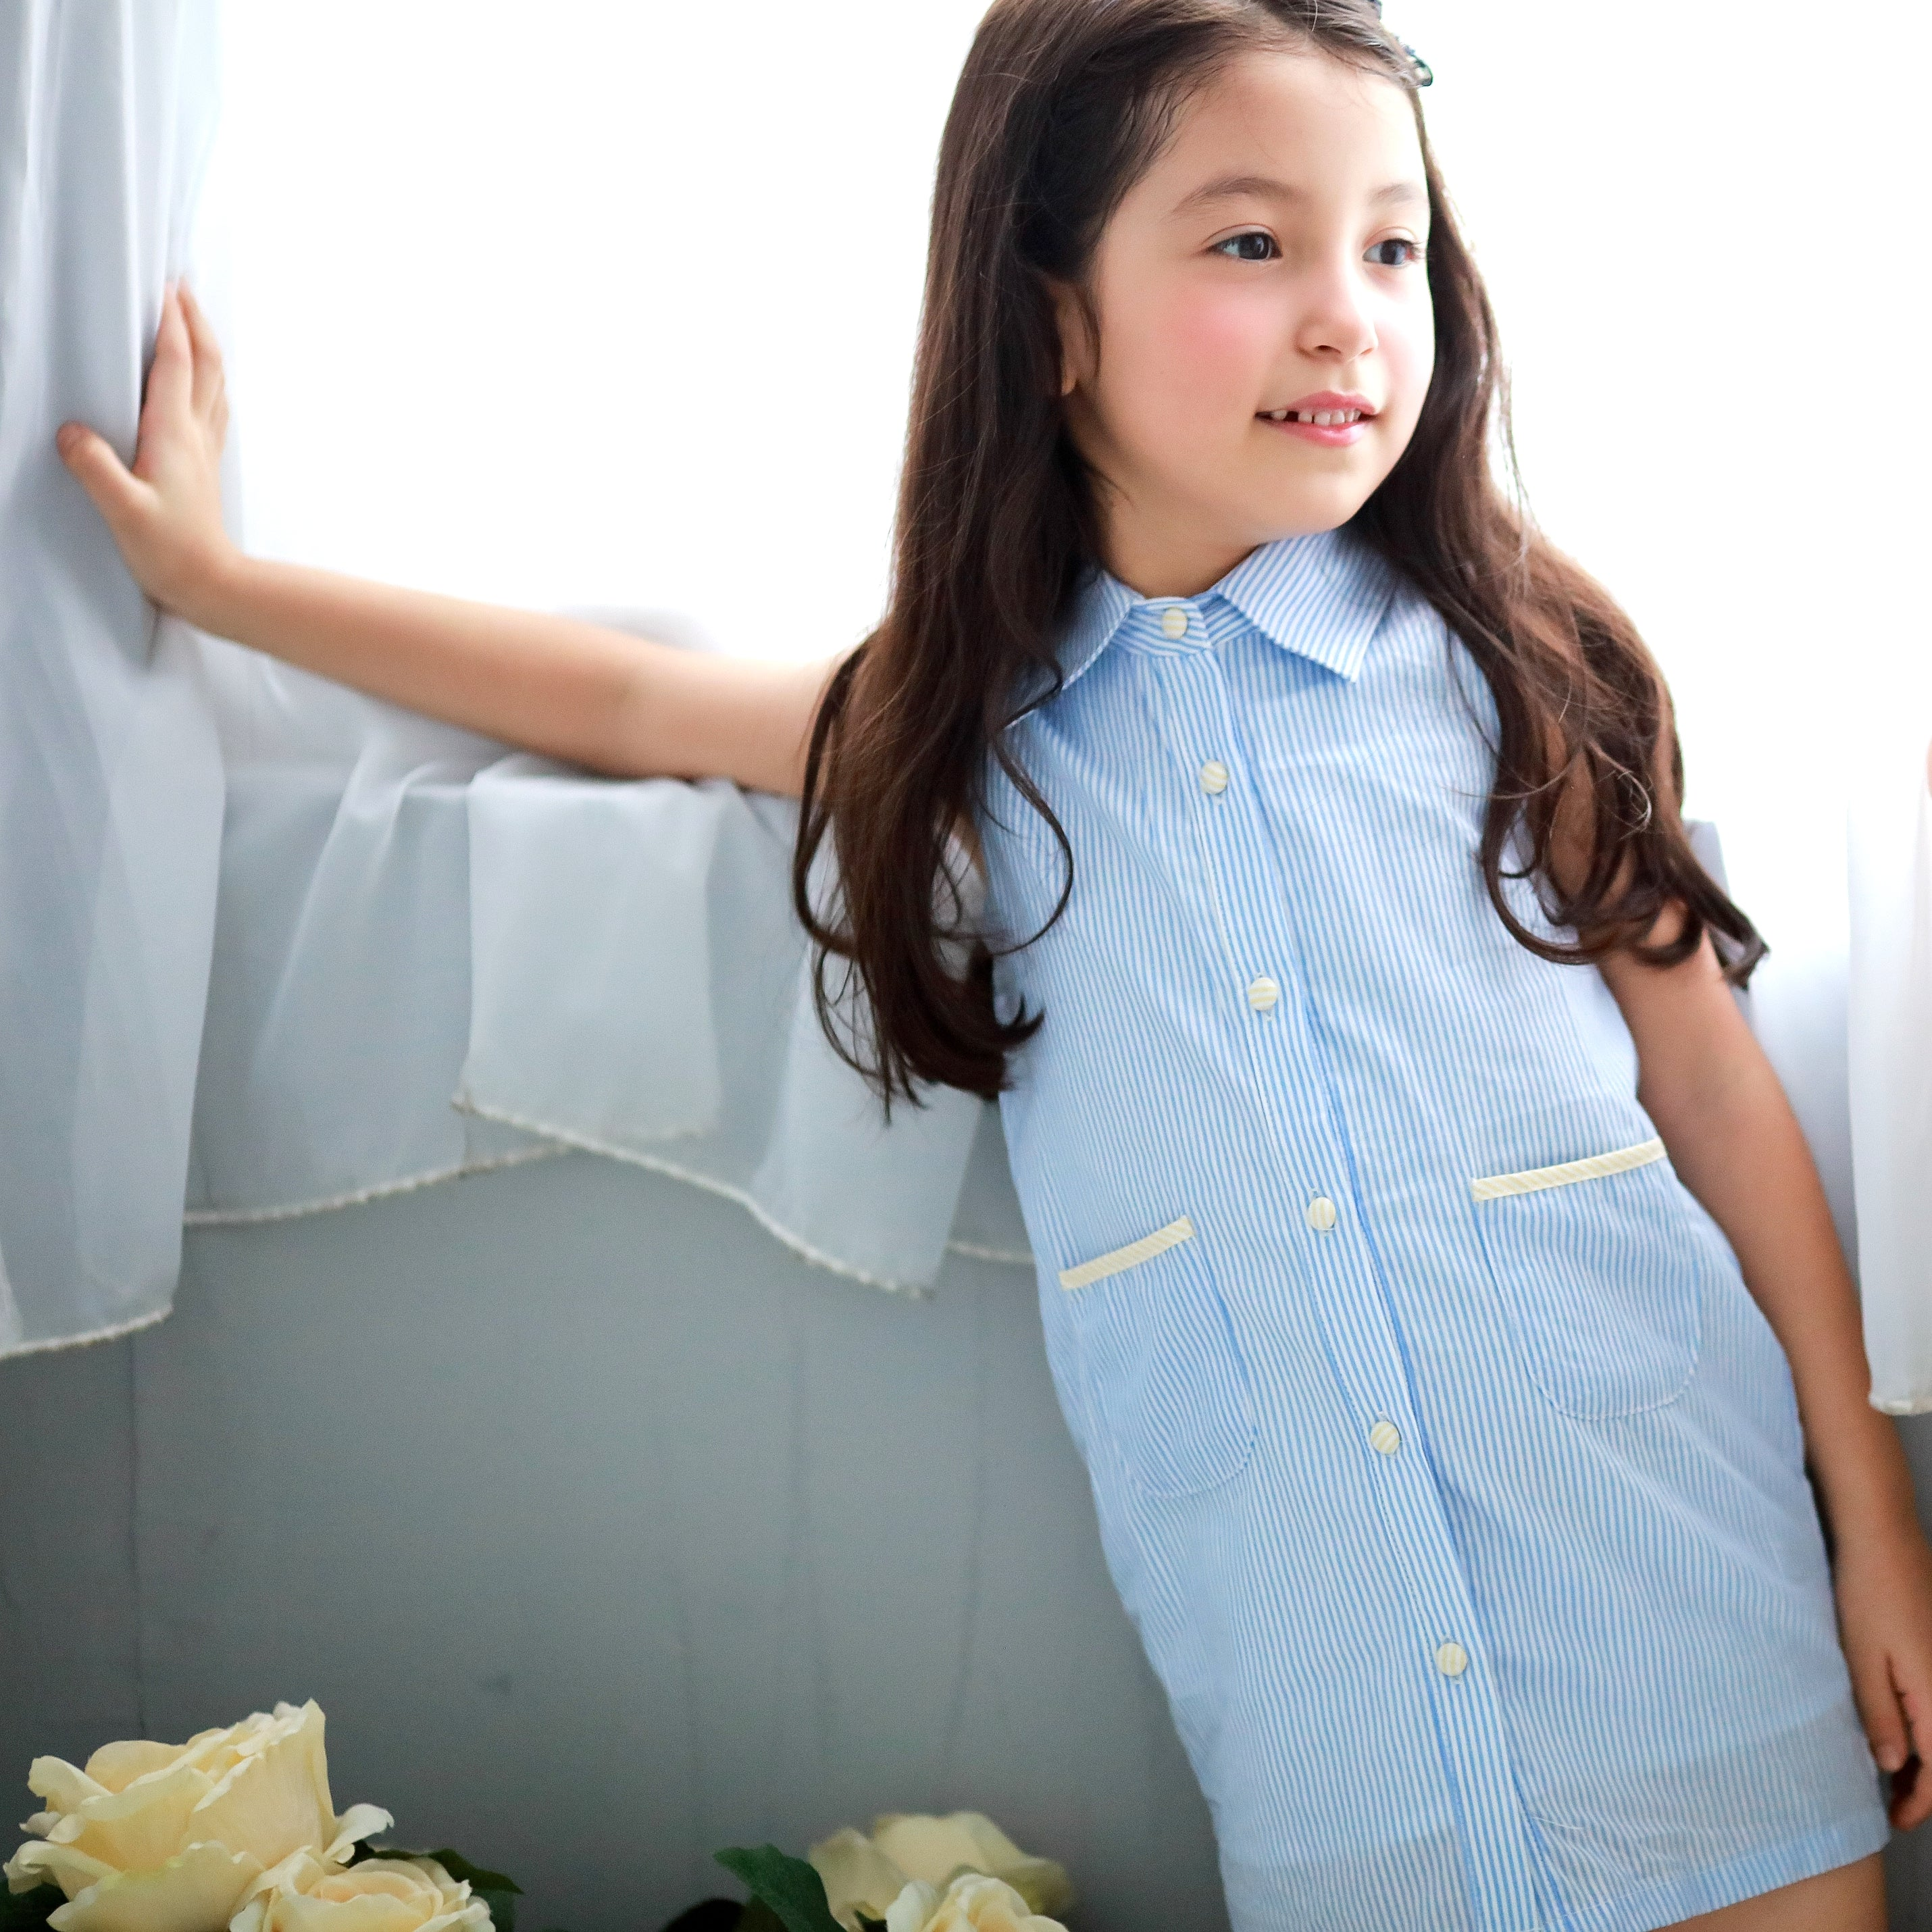 Cotton Strip Dress (blue) - Bunny n Bloom Mommy & Me Dress